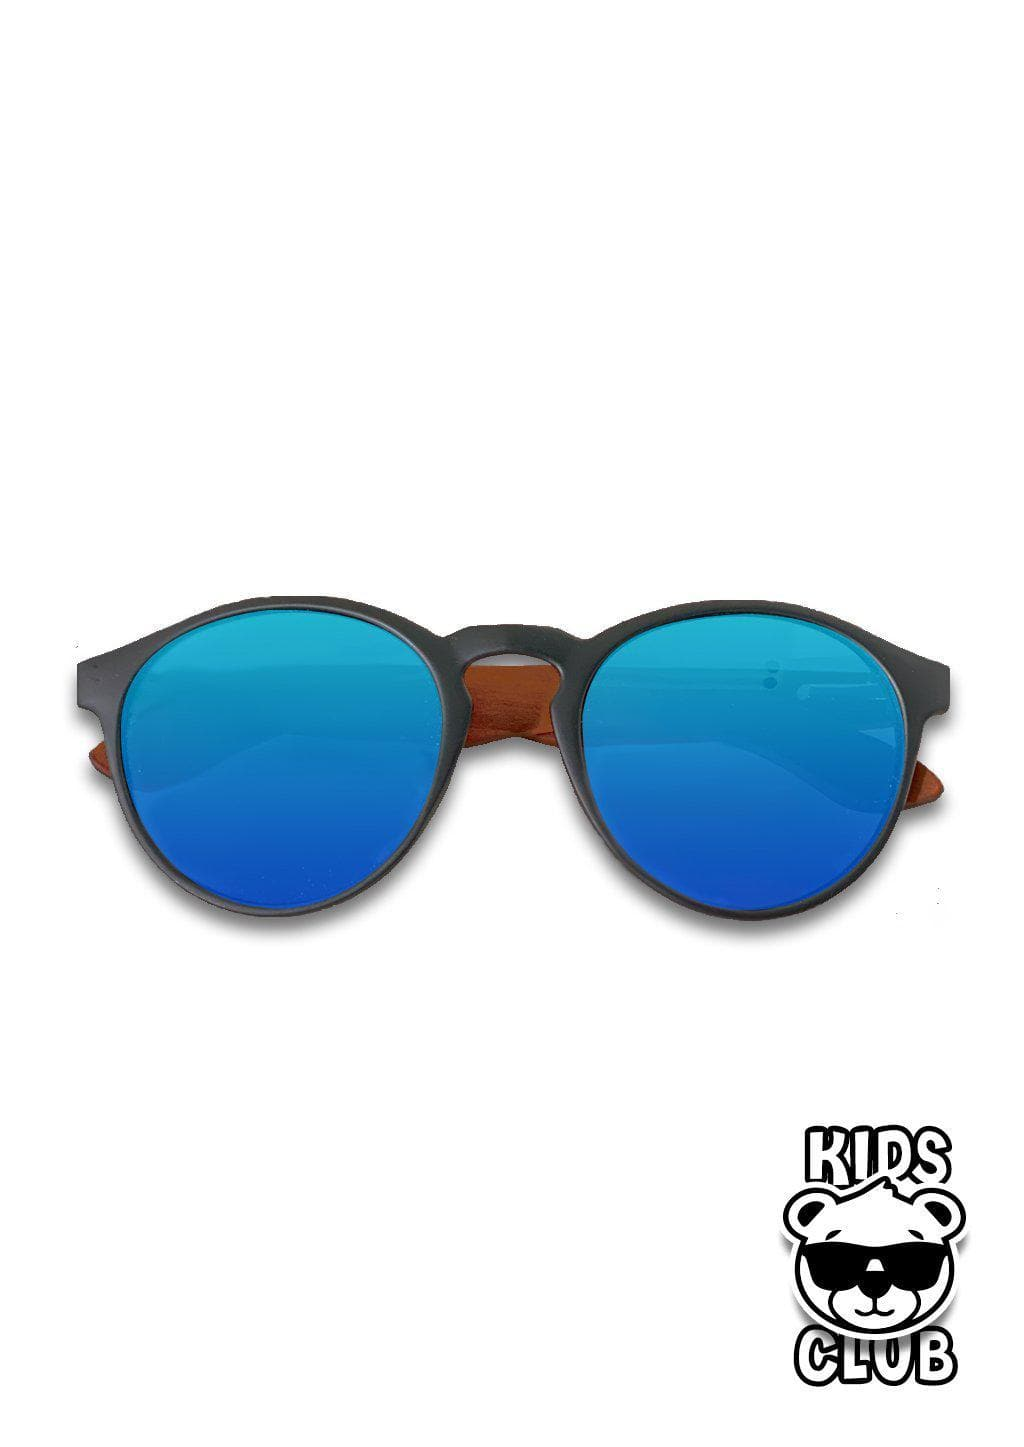 Eyewood Cubs - Lilo - Wooden sunglasses for kids and toddlers.